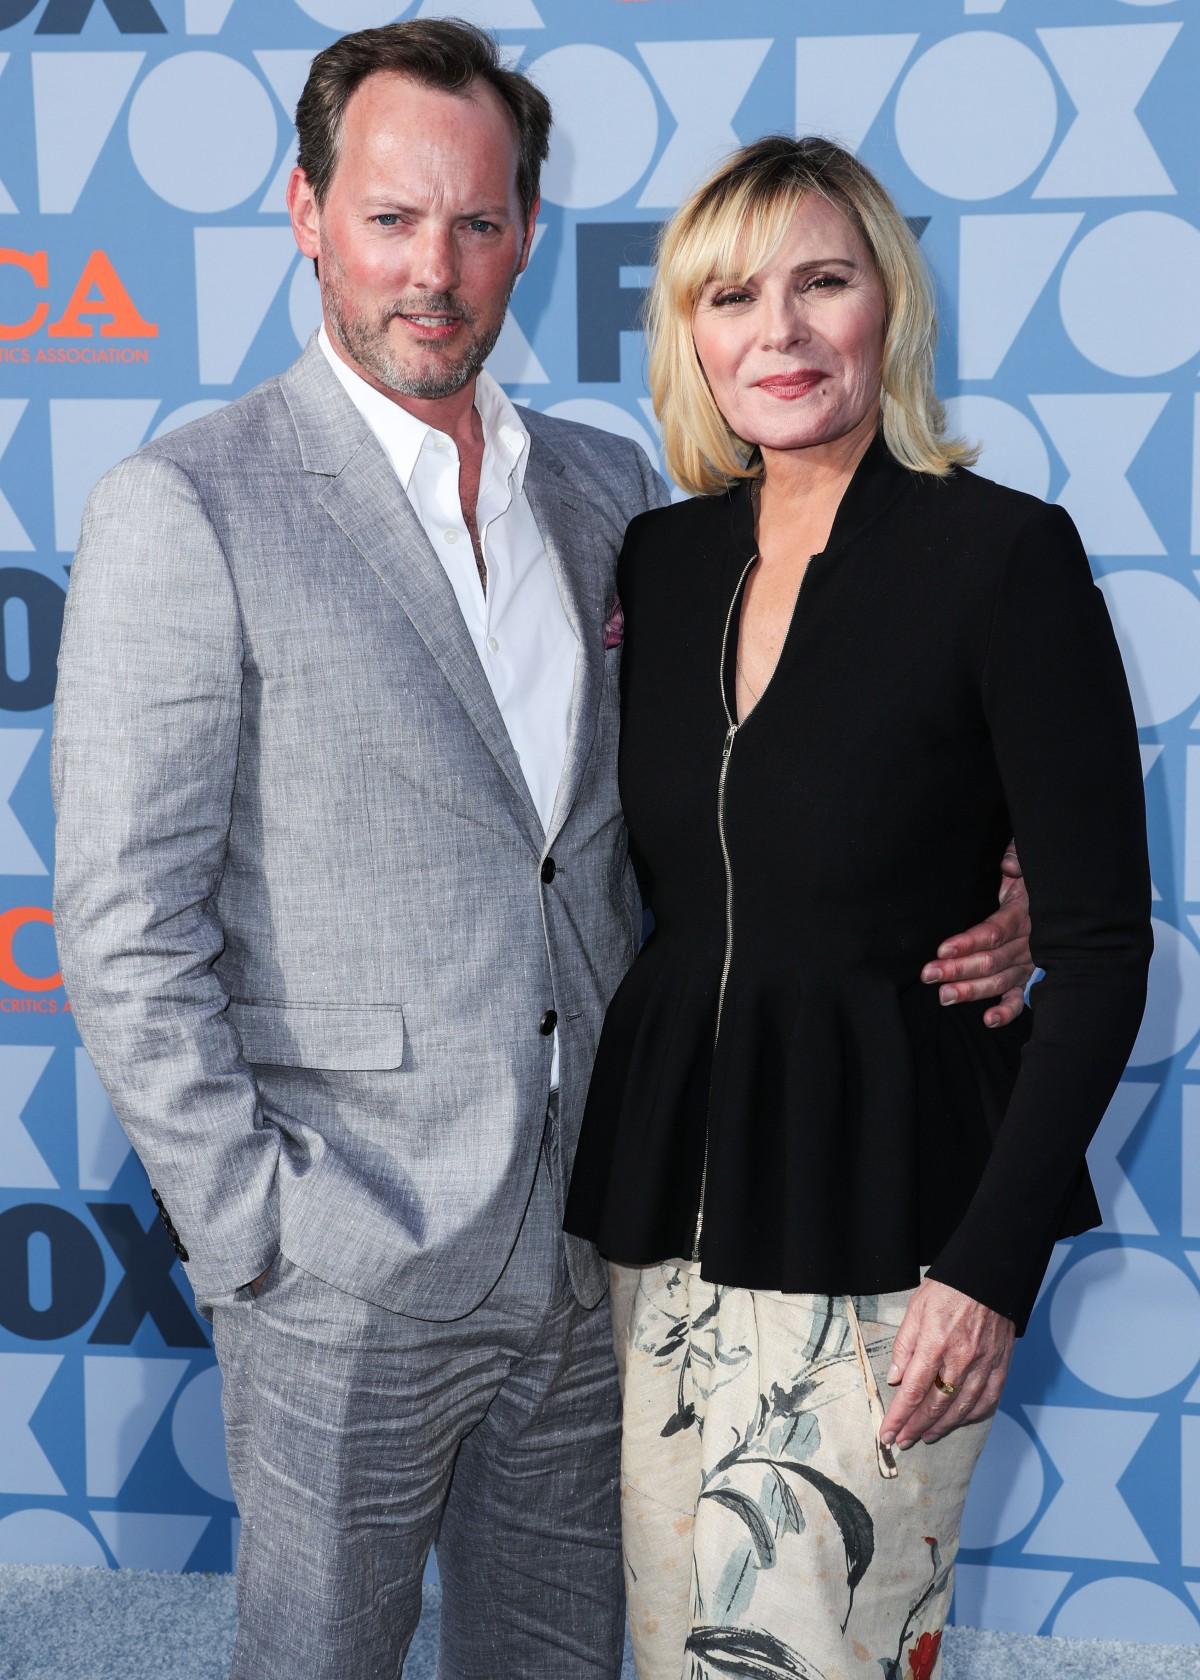 Russell Thomas and actress Kim Cattrall arrive at the FOX Summer TCA 2019 All-Star Party held at Fox Studios on August 7, 2019 in Los Angeles, California, United States.